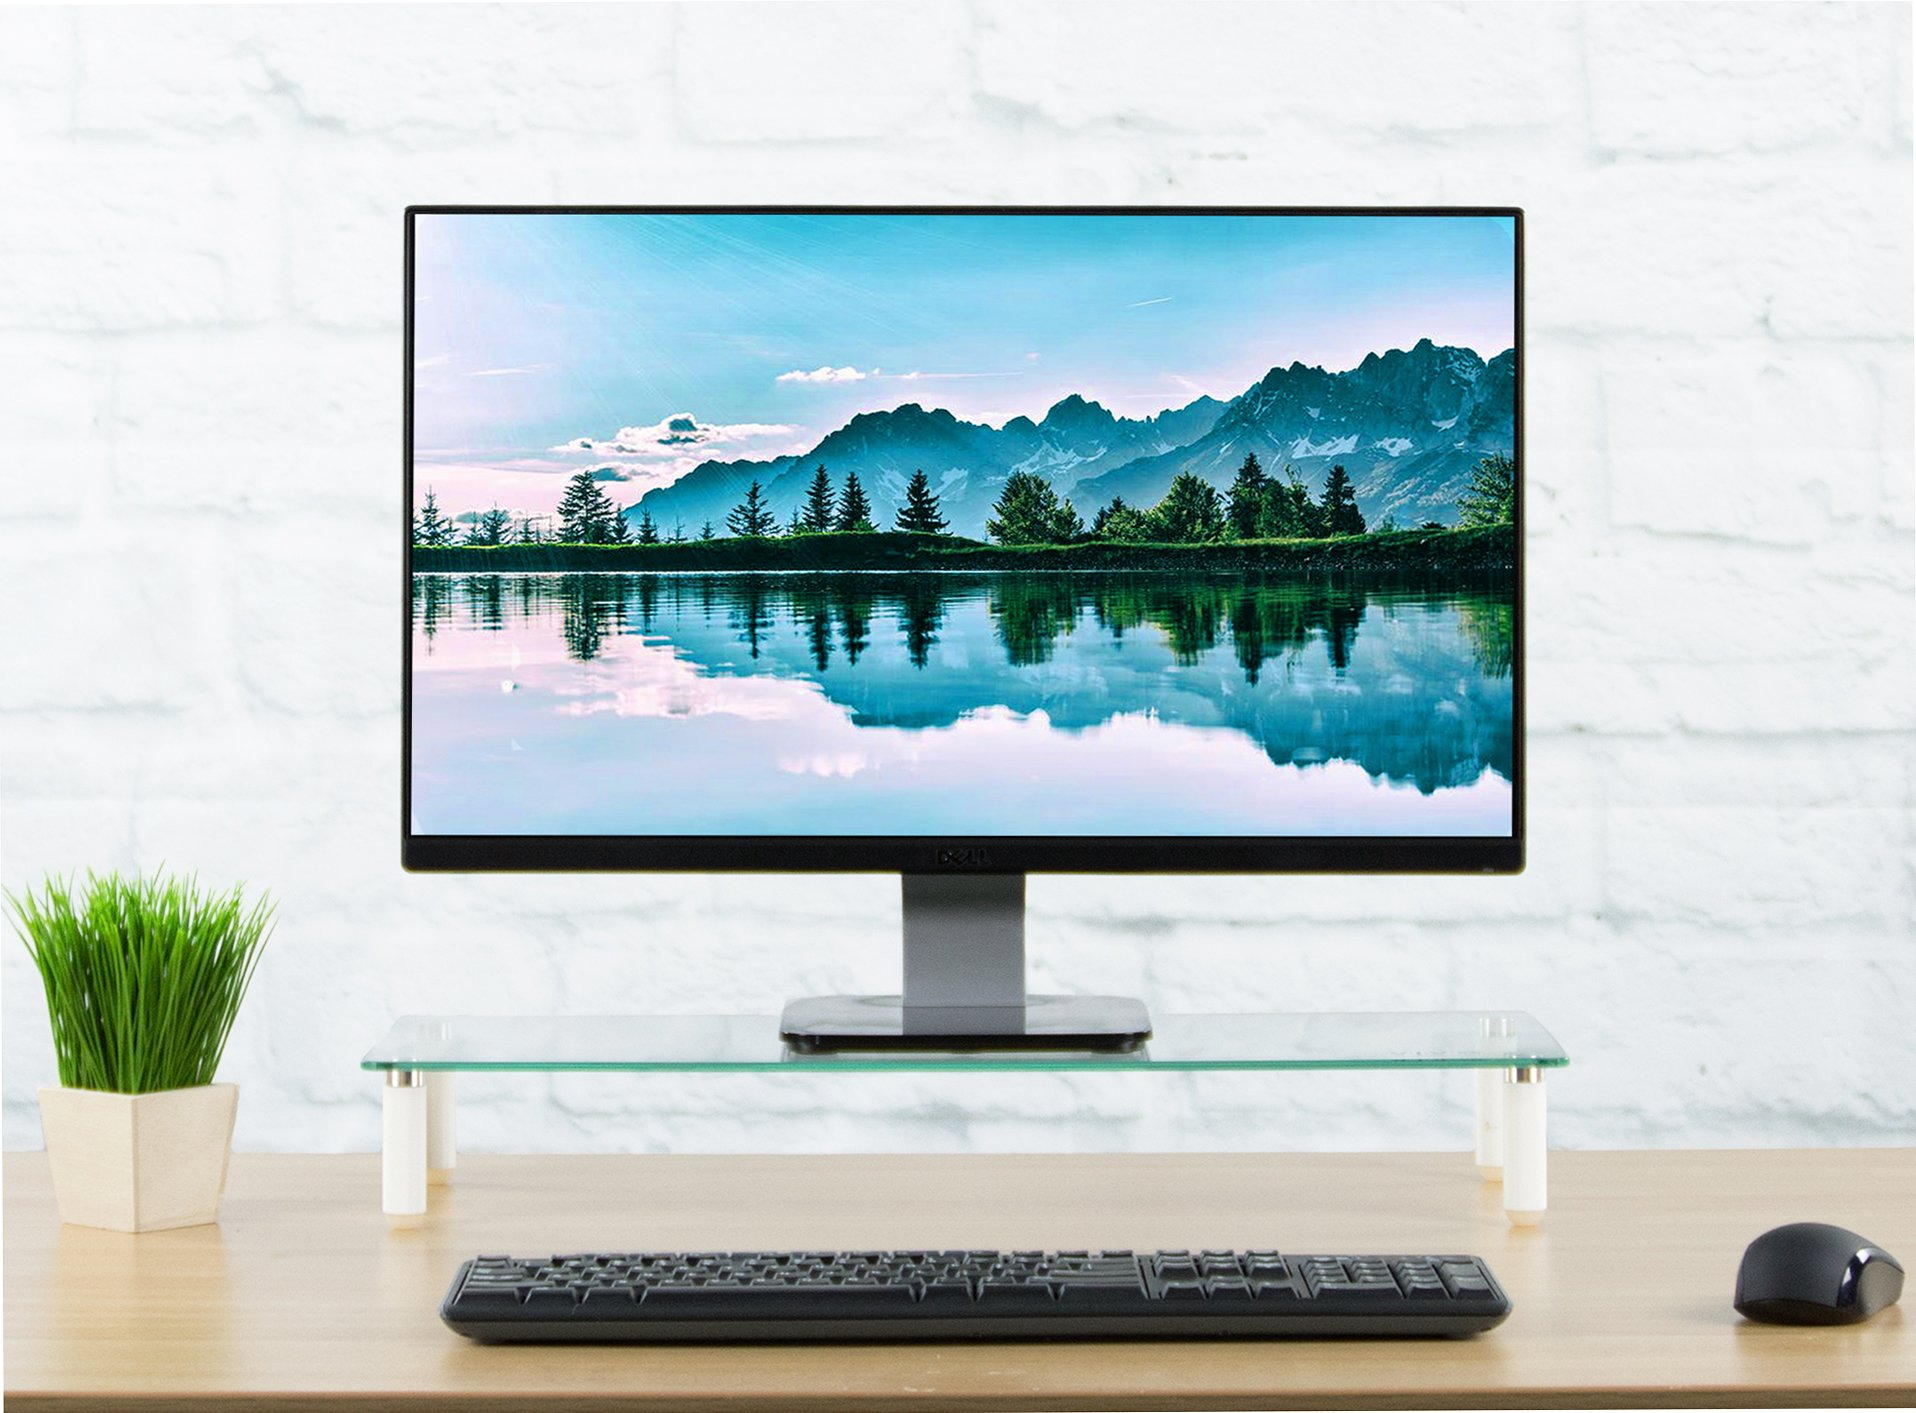 VIVO Glass Ergonomic Tabletop Riser/Desktop Stand for Computer Monitor, LCD LED TV, Monitor, Laptop/Notebook, and more (STAND-V000R) by VIVO (Image #4)